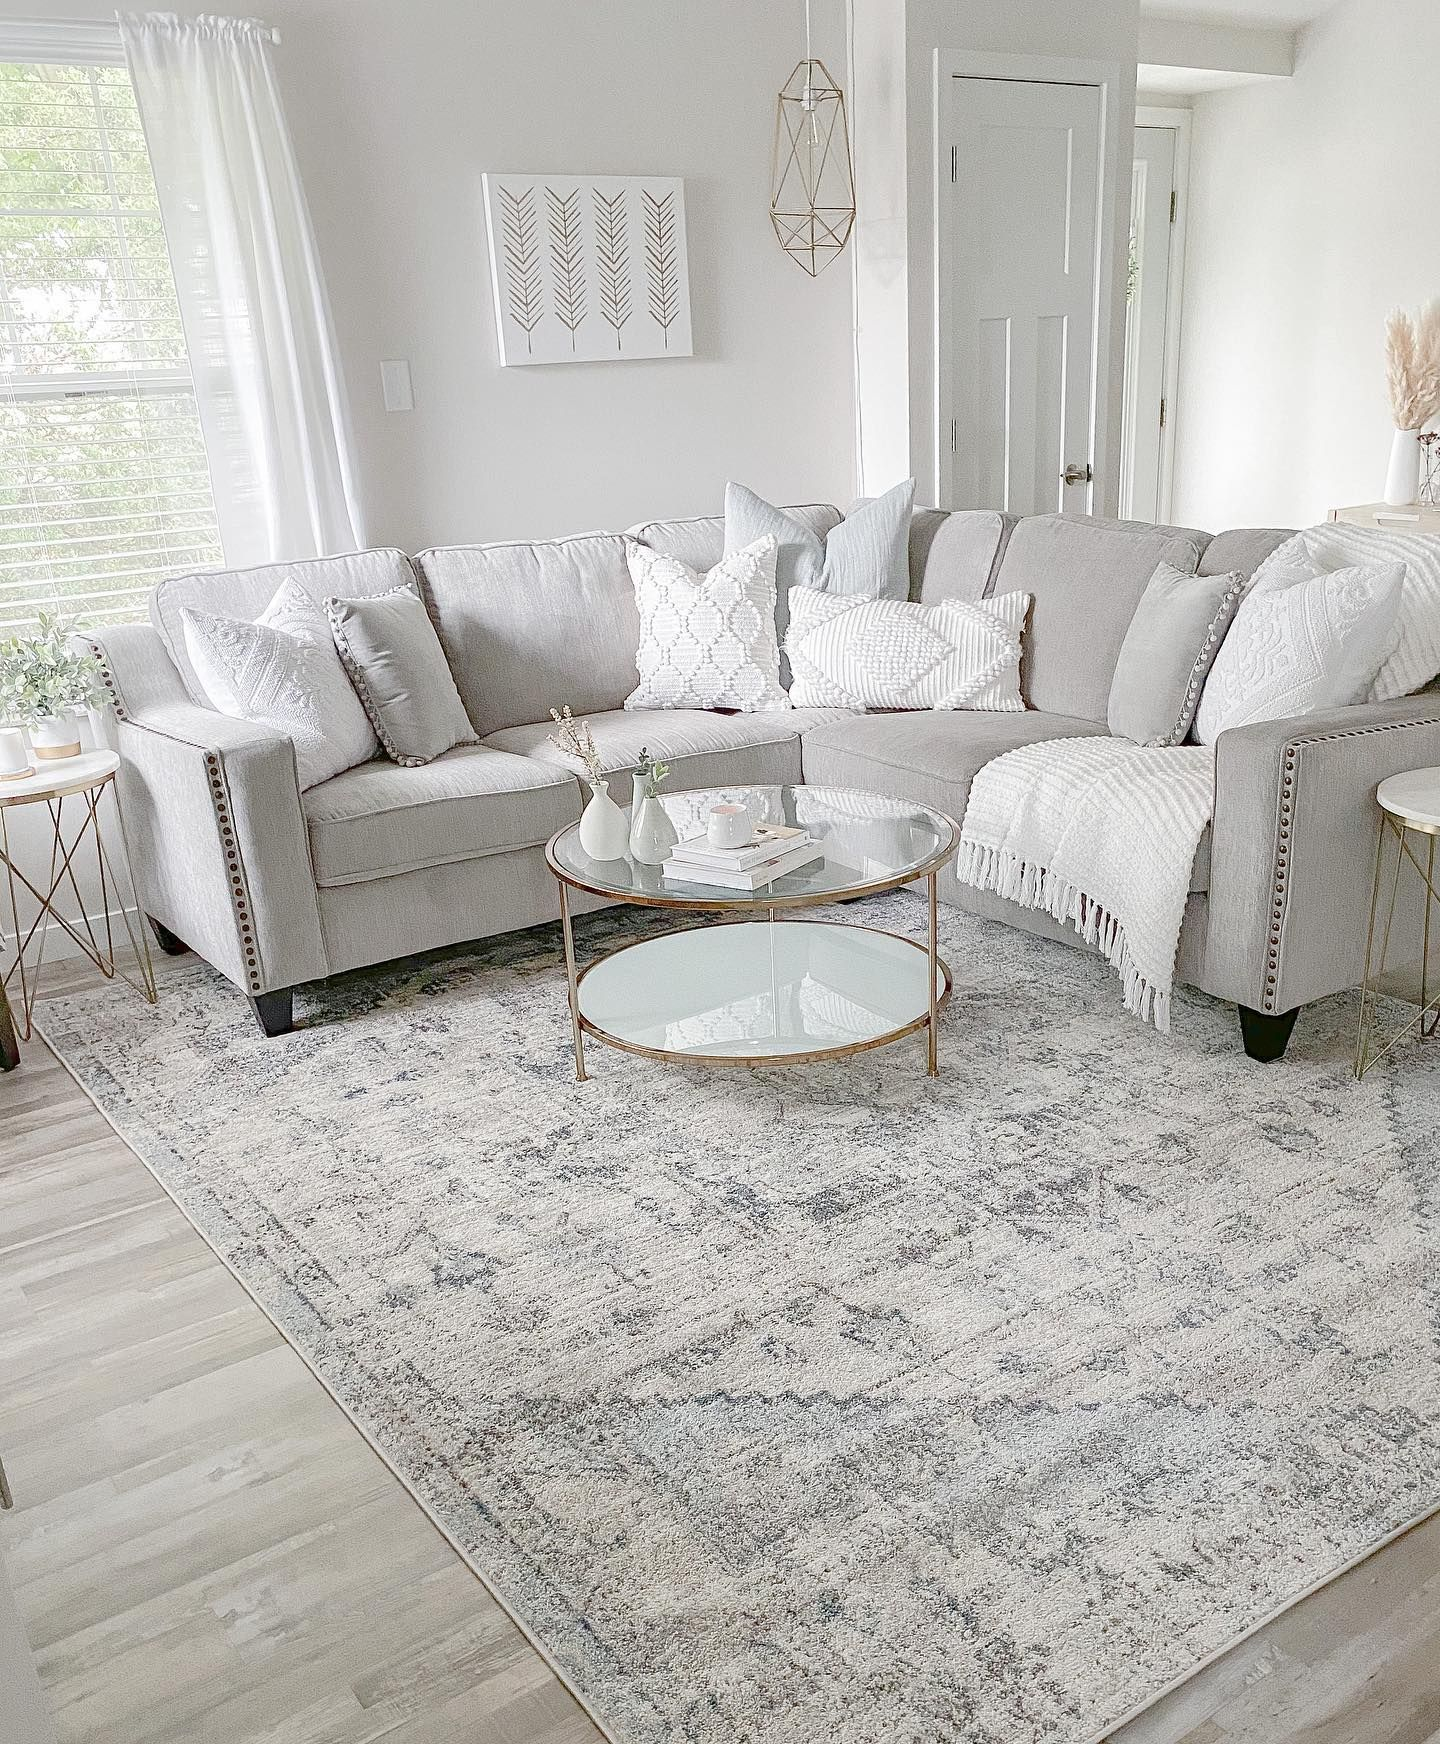 Designed by @ourlakeviewhaven . . . #boutiquerugs #arearug #modernrugs #farmhousedecor #farmhousestyle #moderndecor #modernstyle #styleyourspace #rugsofinstagram #designerrug #rugs #handmaderugs #ruglove #homedesign #interiorstyle #modernhome #ourhome #instalove #instagood #love #ourcustomersrock #reviews #realhomesofinstagram #roominspo #home #plants #halloweendecor #falldecor